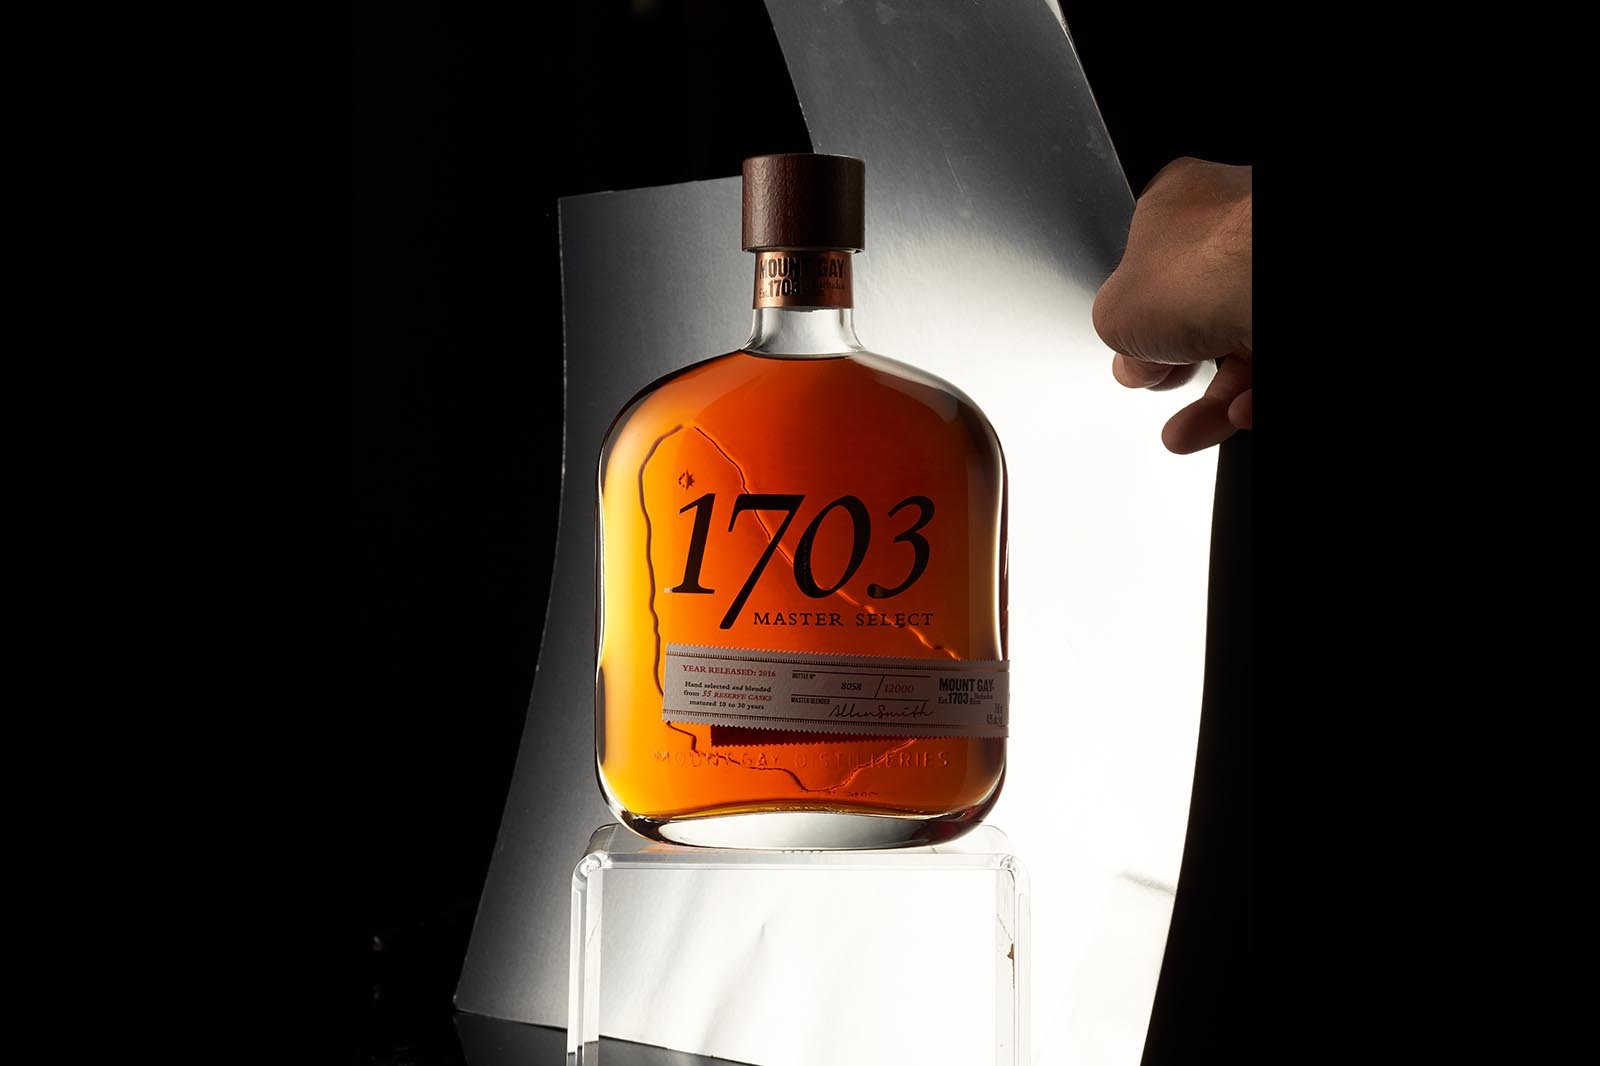 A 1703 bottle with smoke before retouching